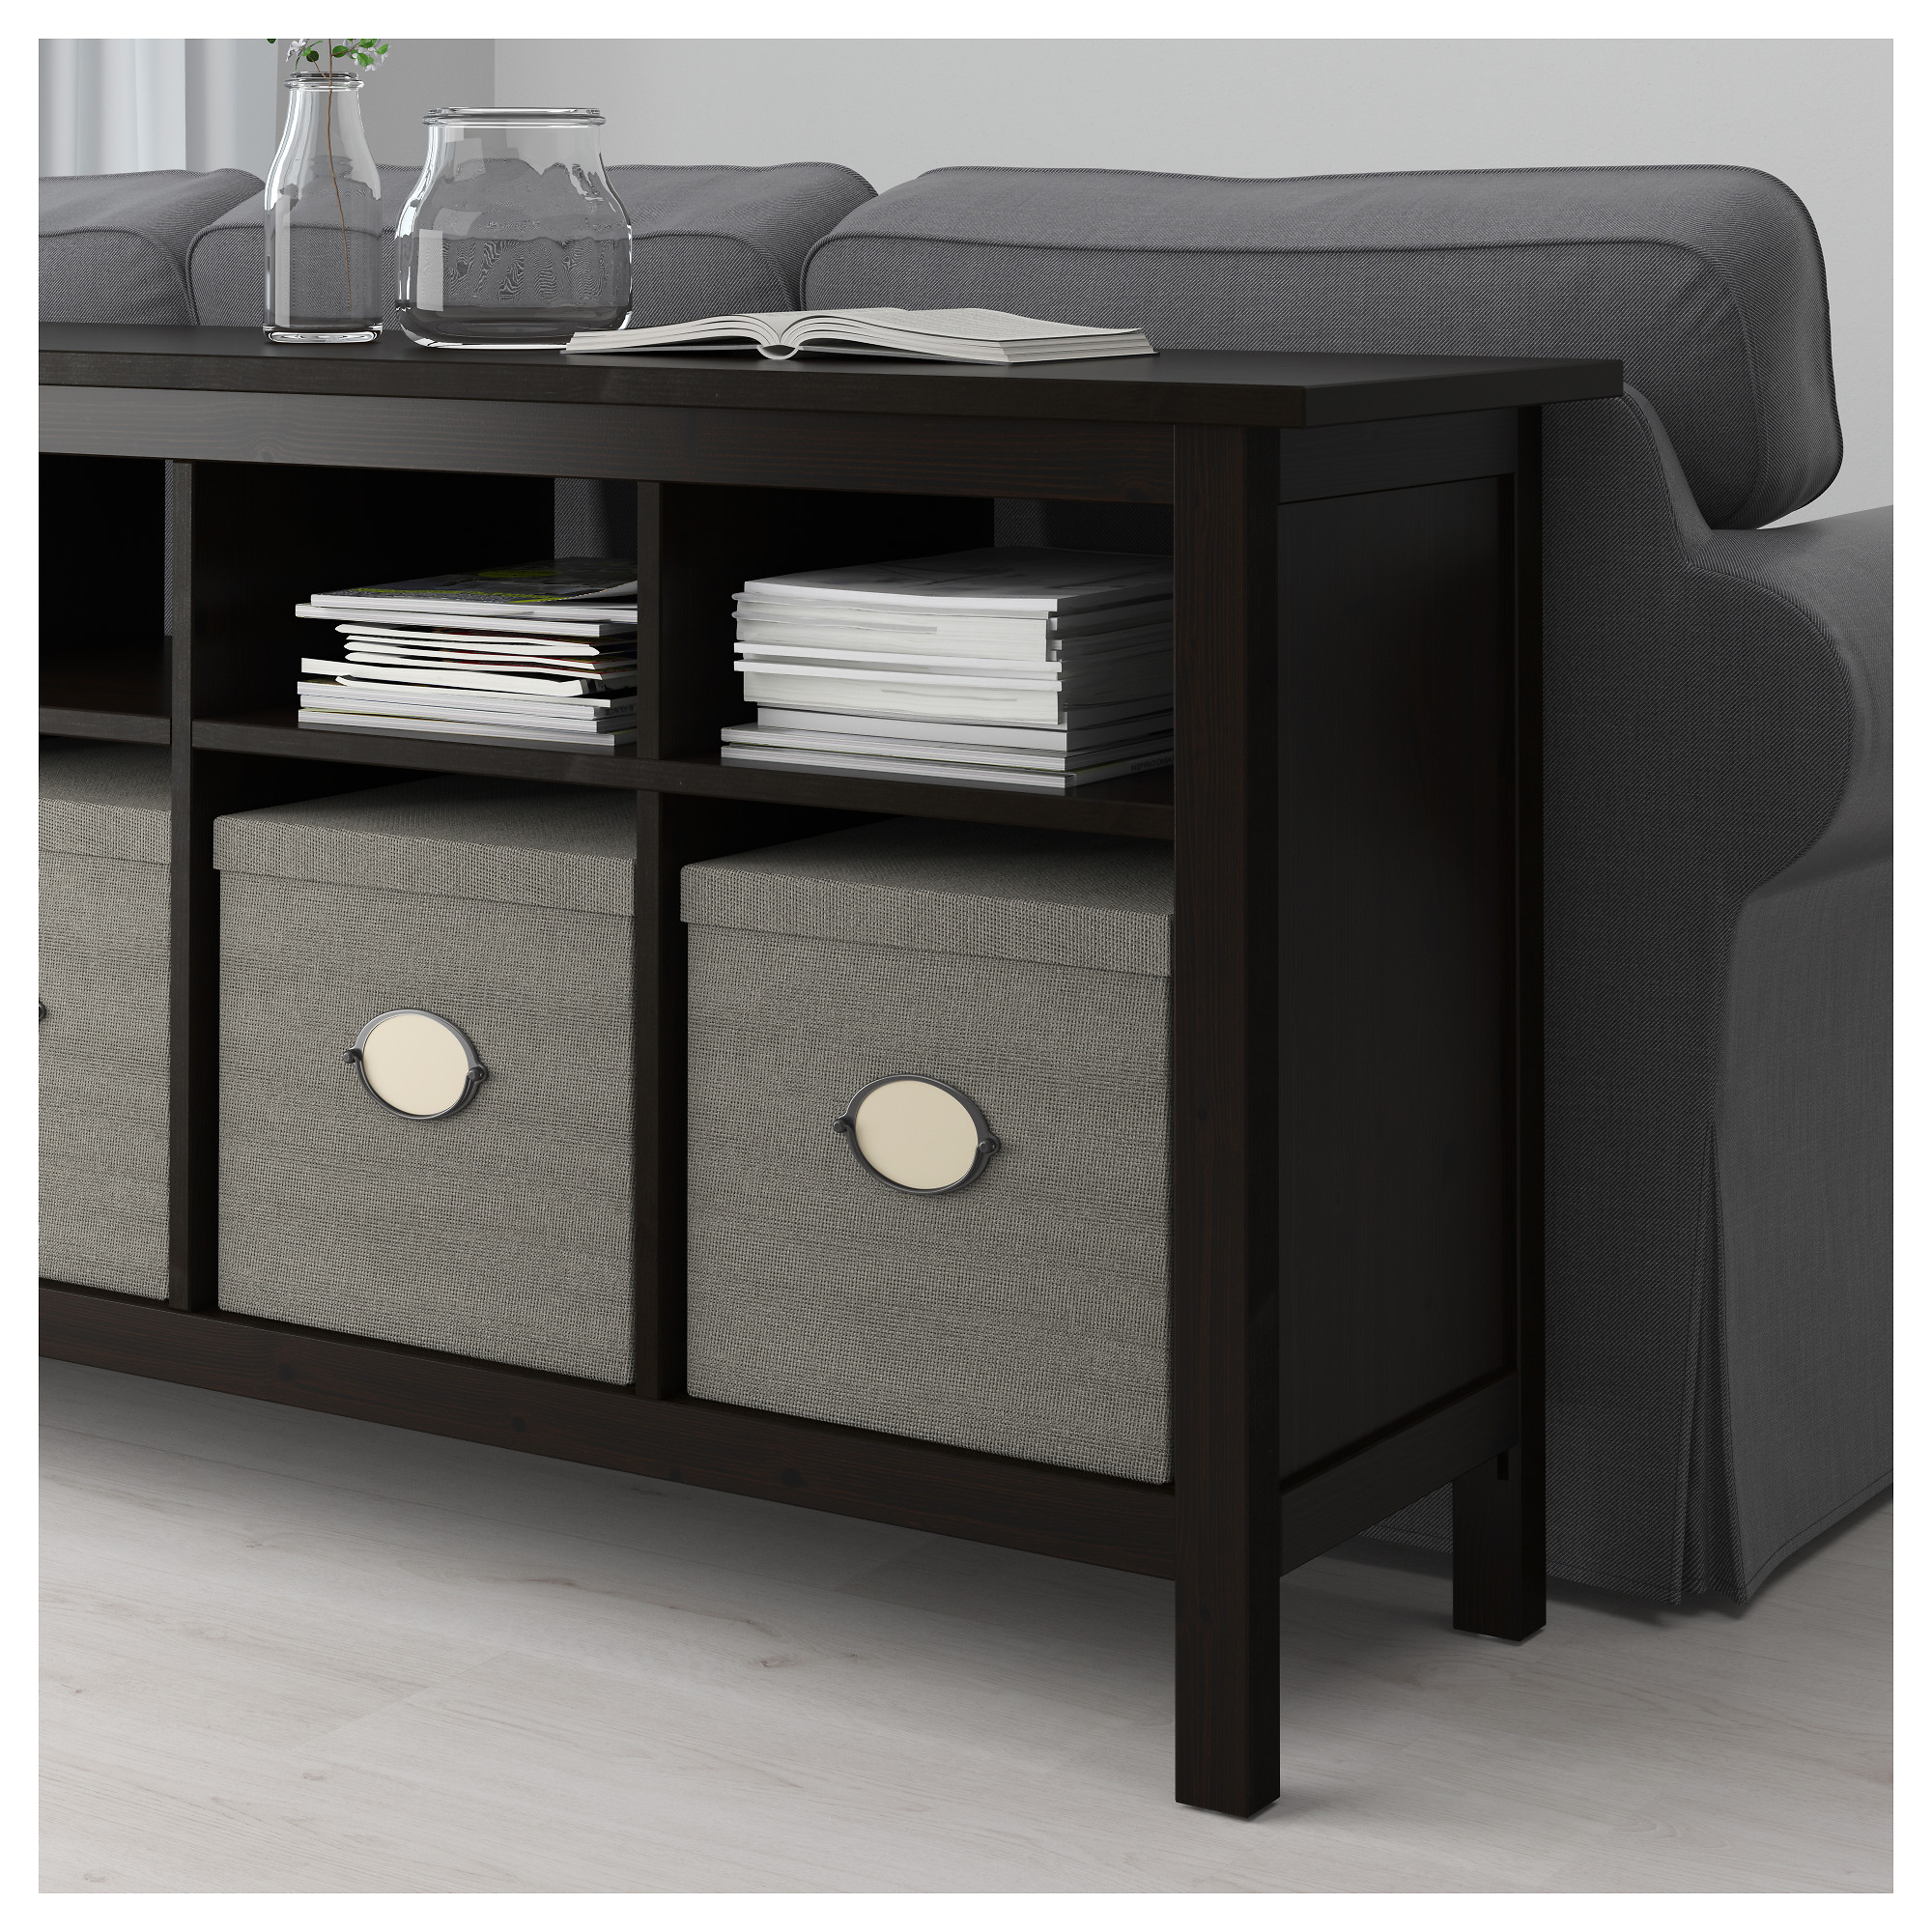 Console Table HEMNES Black Brown